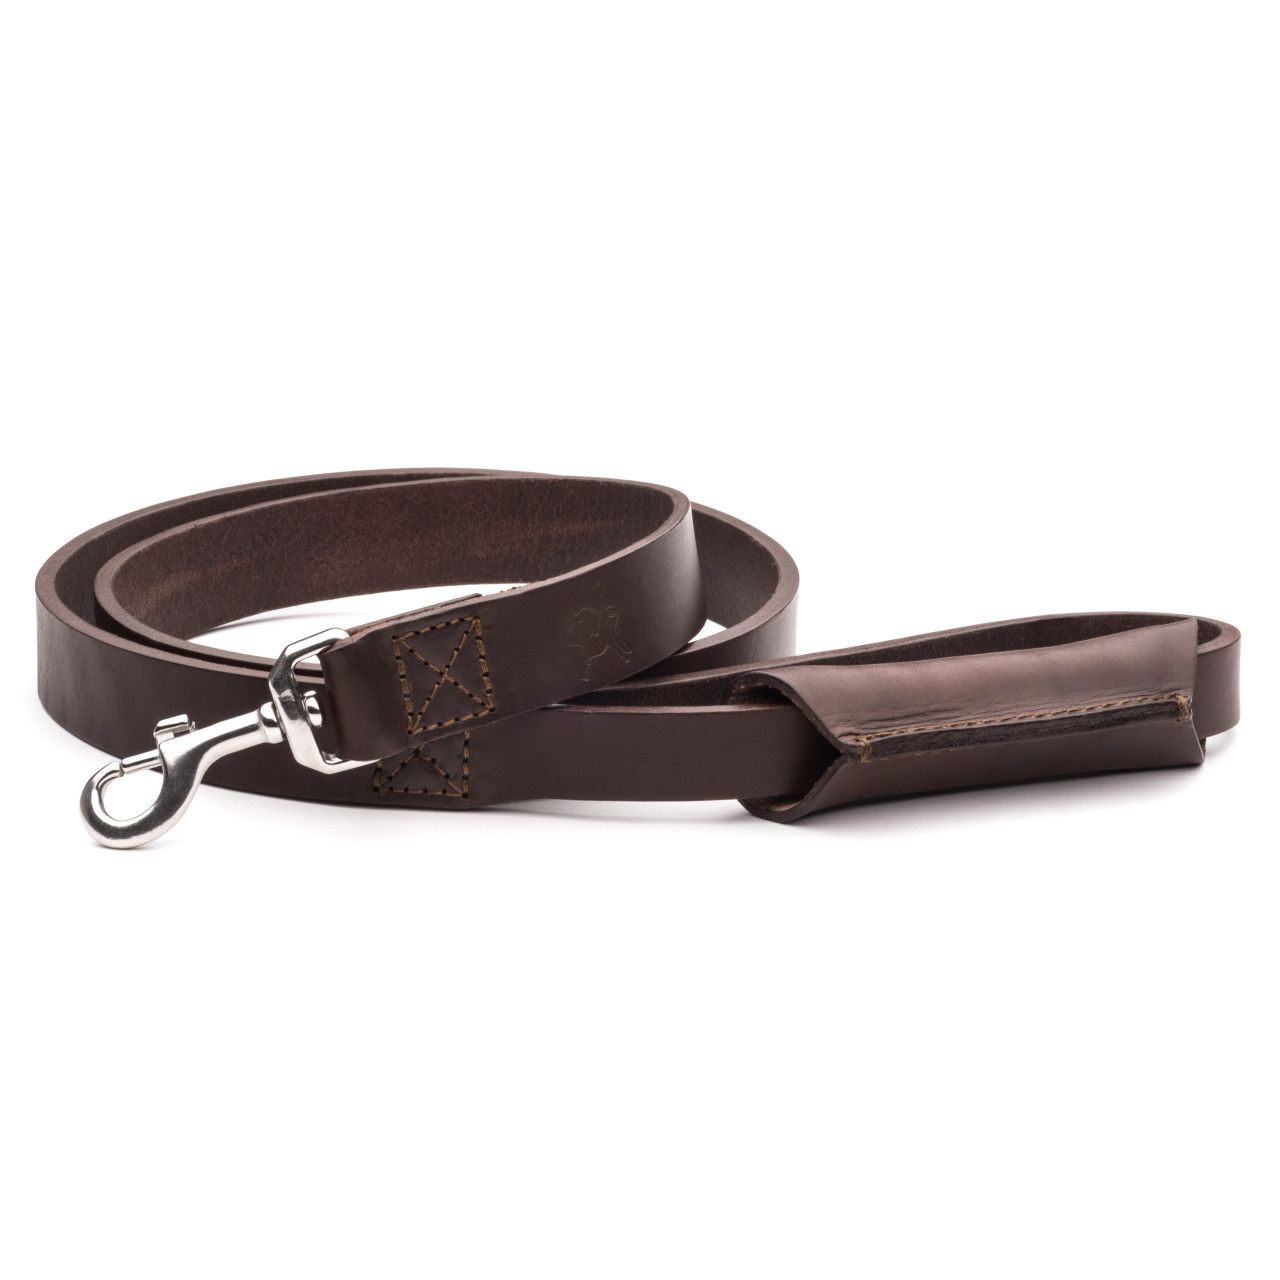 leather dog leash in dark coffee brown leather